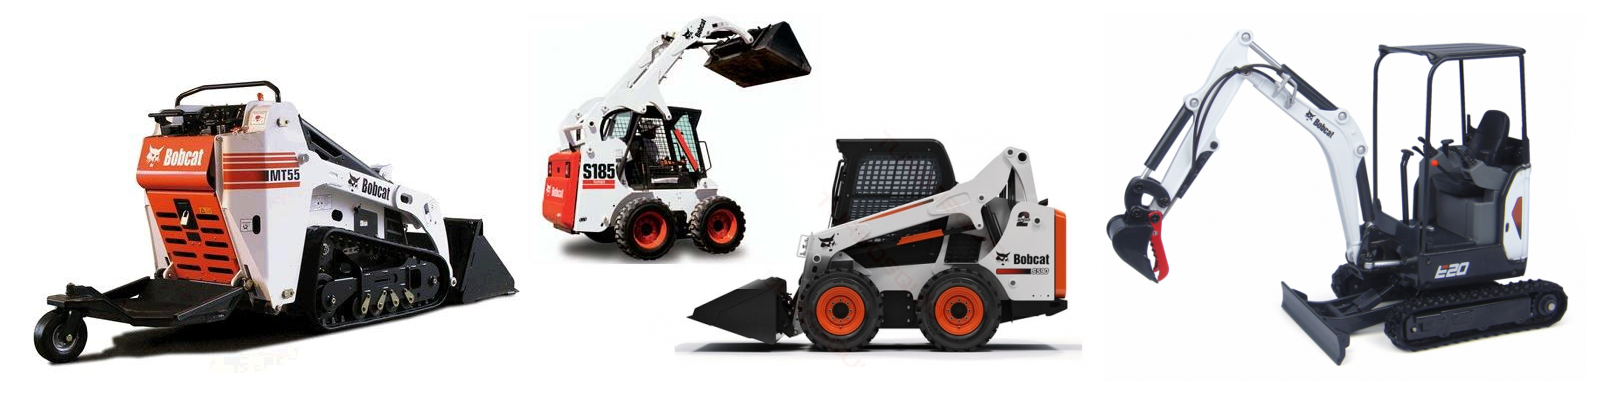 Earthmoving Equipment Rentals in NOLA, New Orleans, Metairie, Marrero, Terrytown, Gretna, and Harvey LA